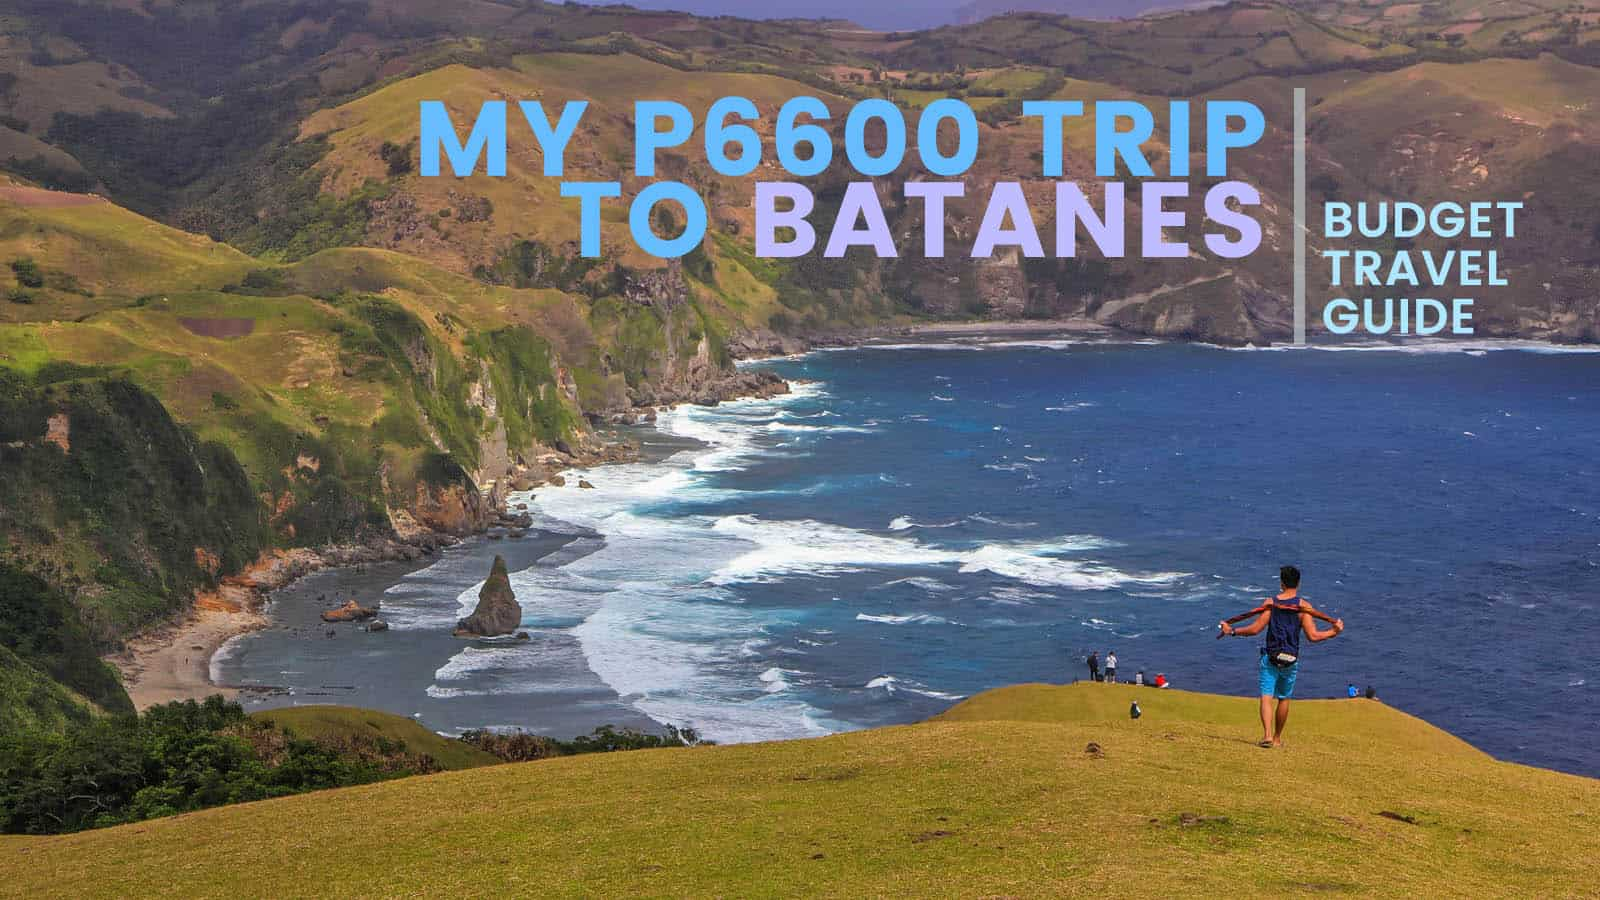 Batanes Budget Travel Guide Updated 2016 The Poor